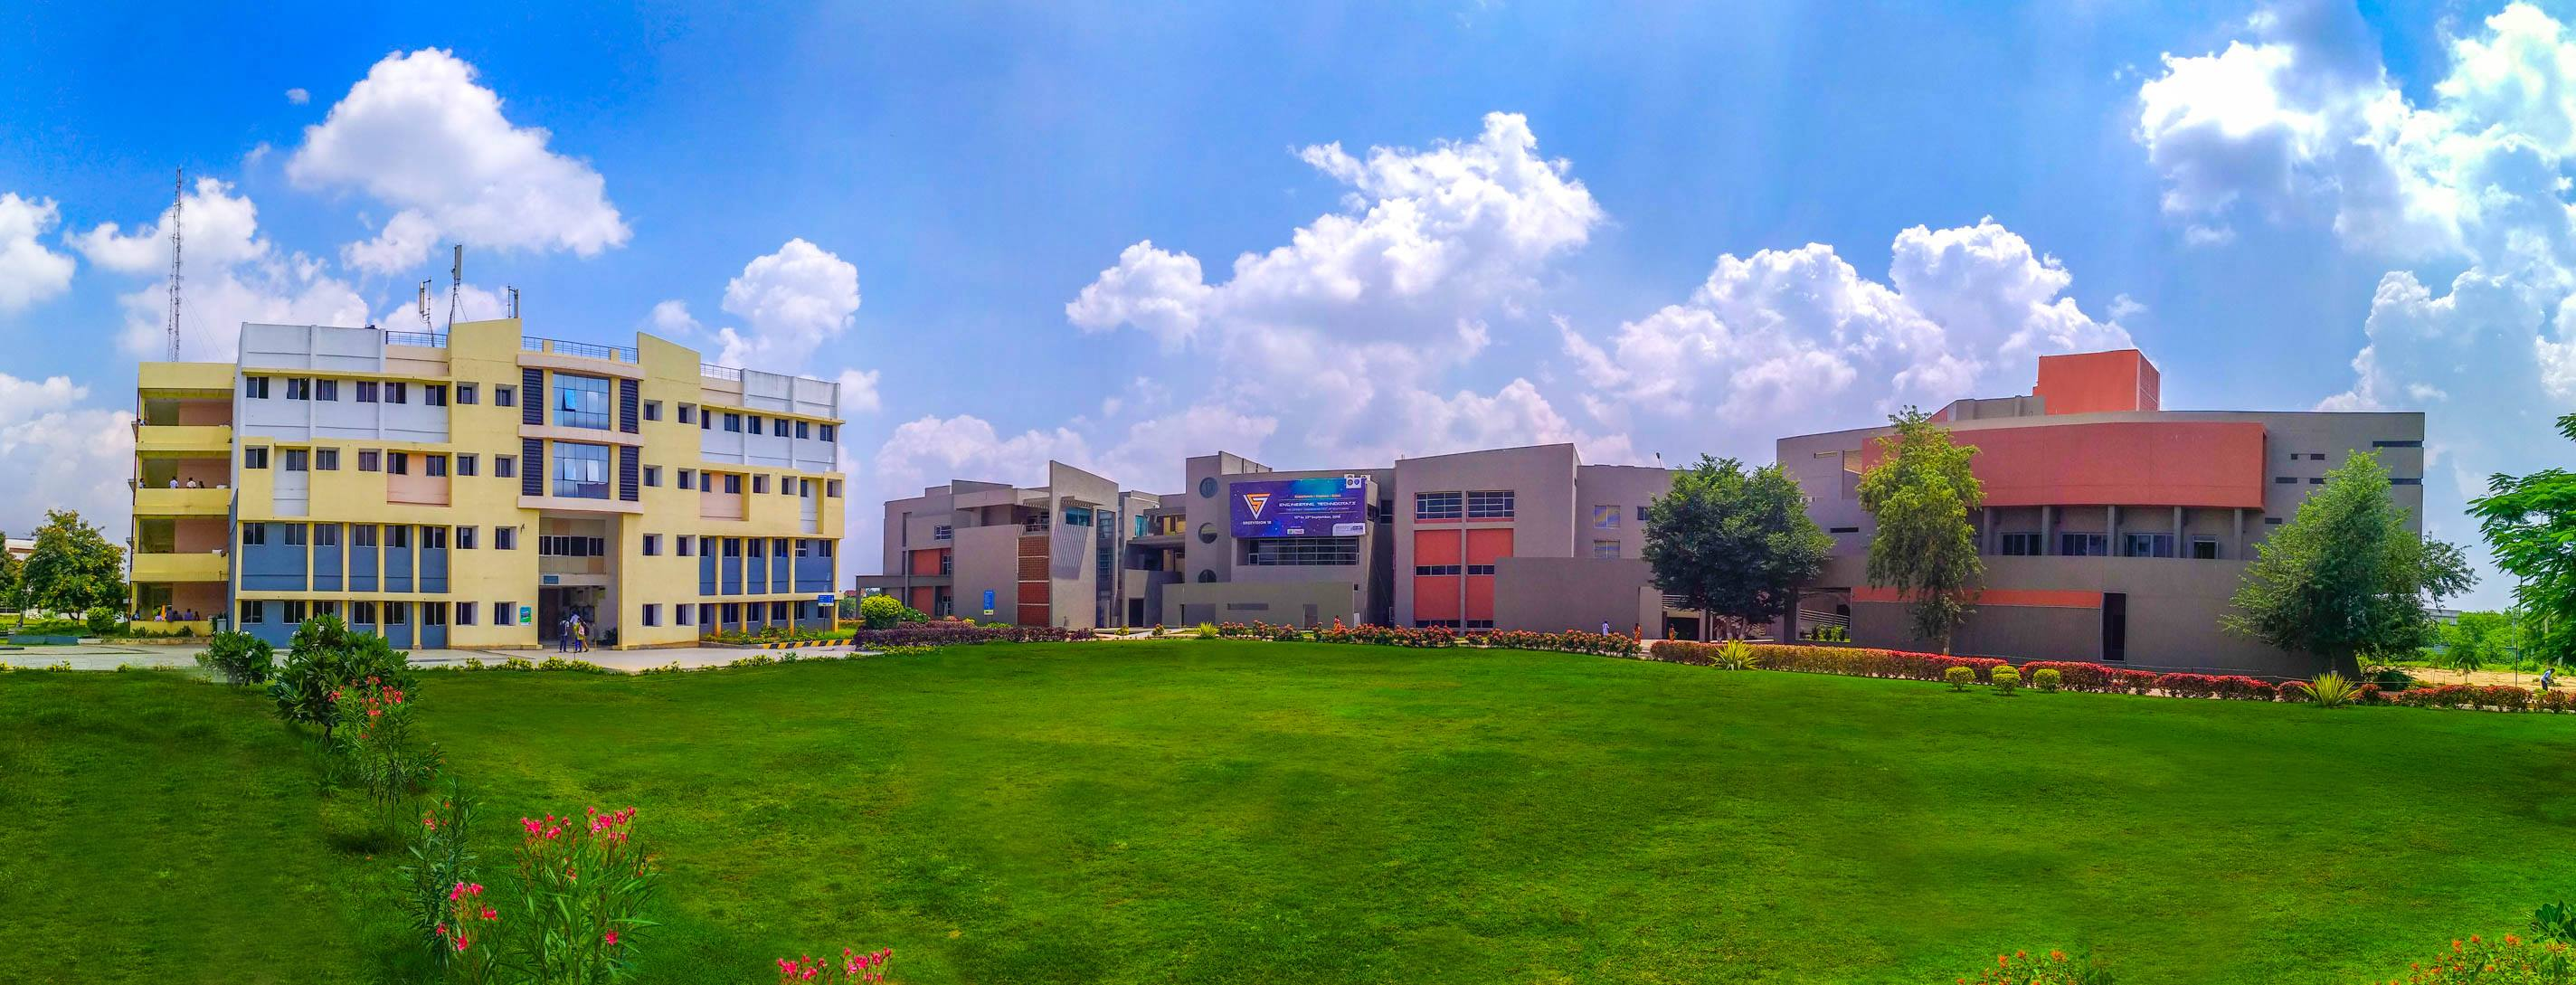 Sreenidhi Institute Of Science & Technology - Hyderabad Photo1